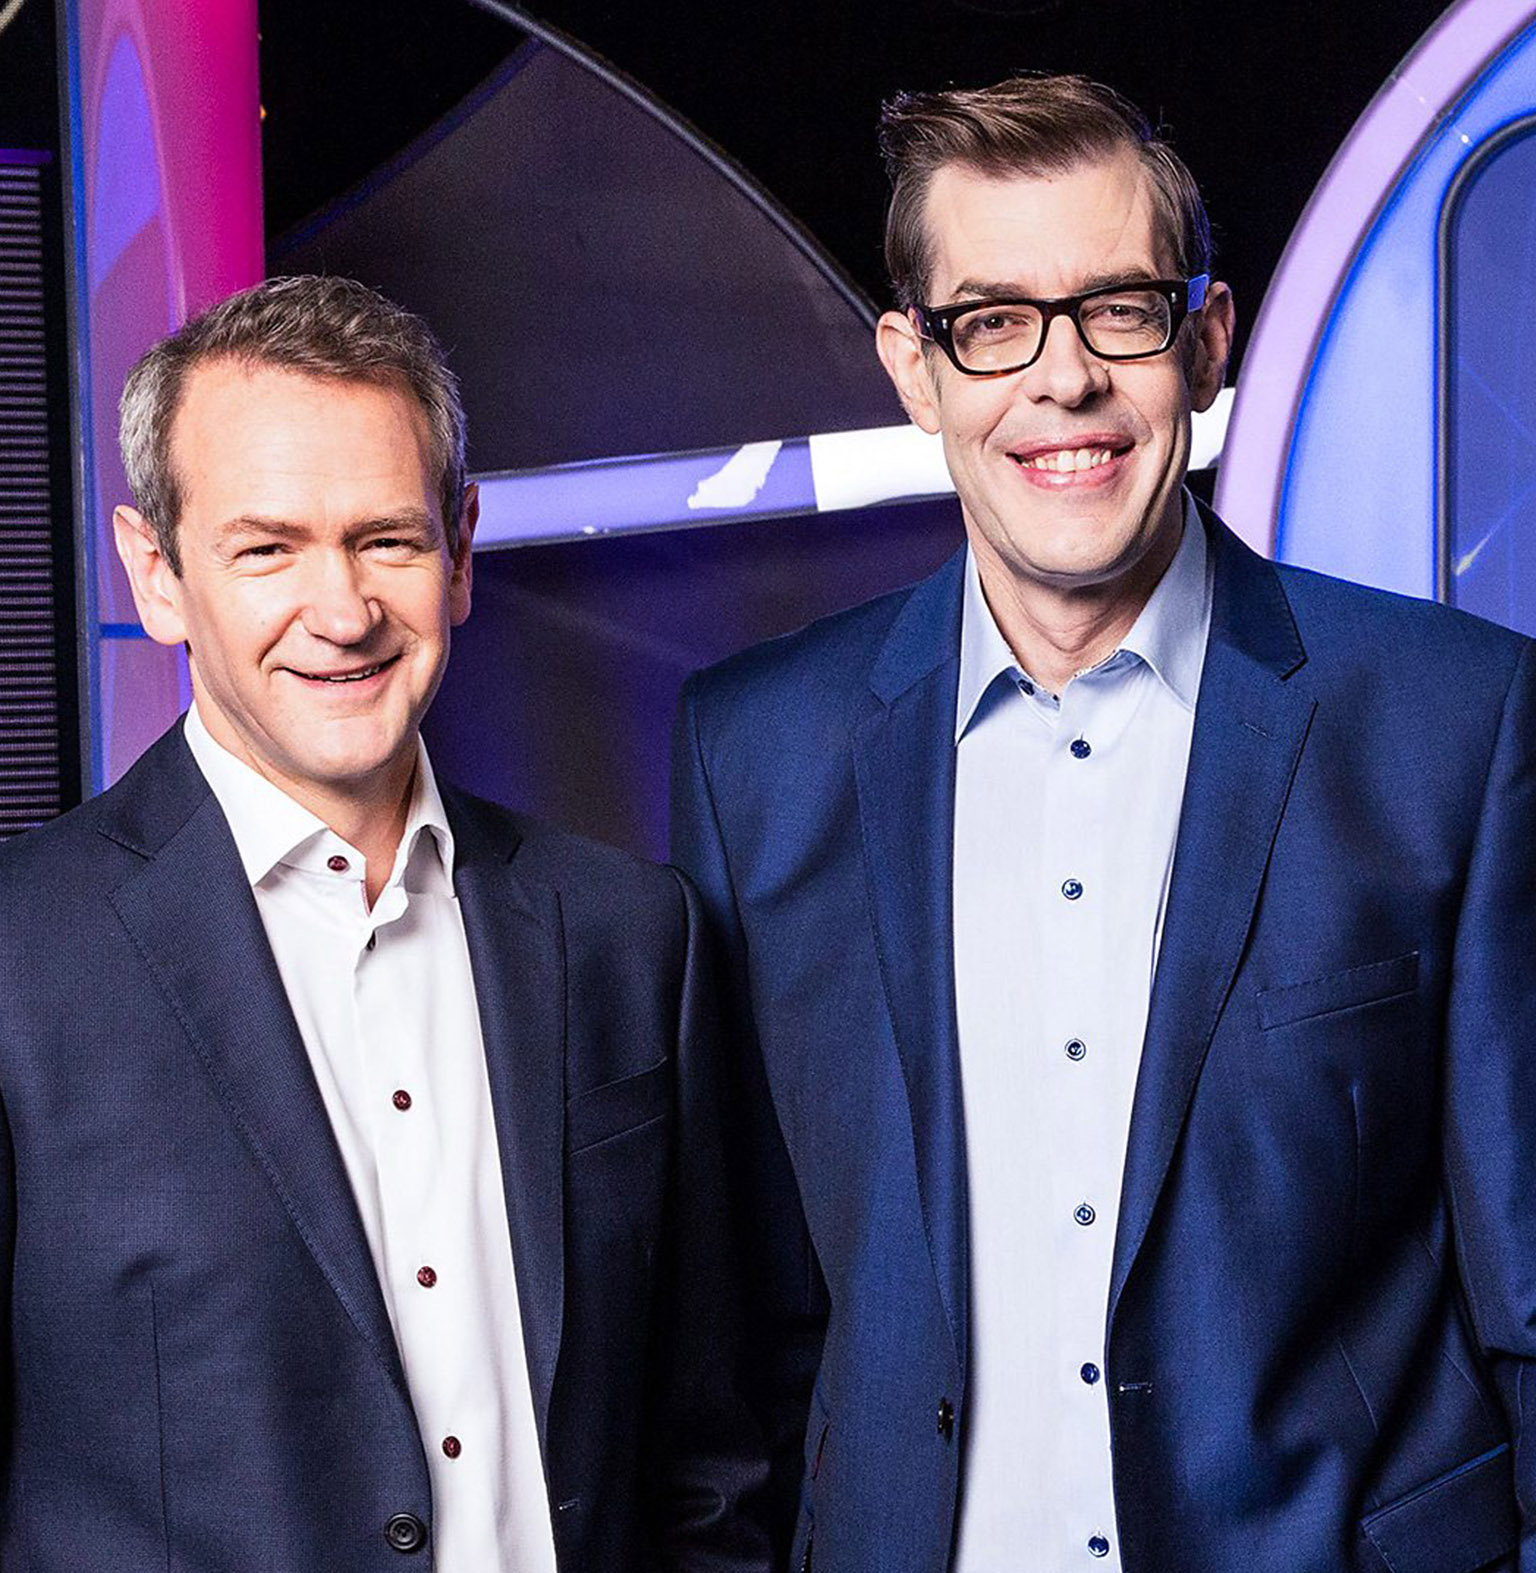 Alexander Armstrong and Richard Osman from BBC's Pointless